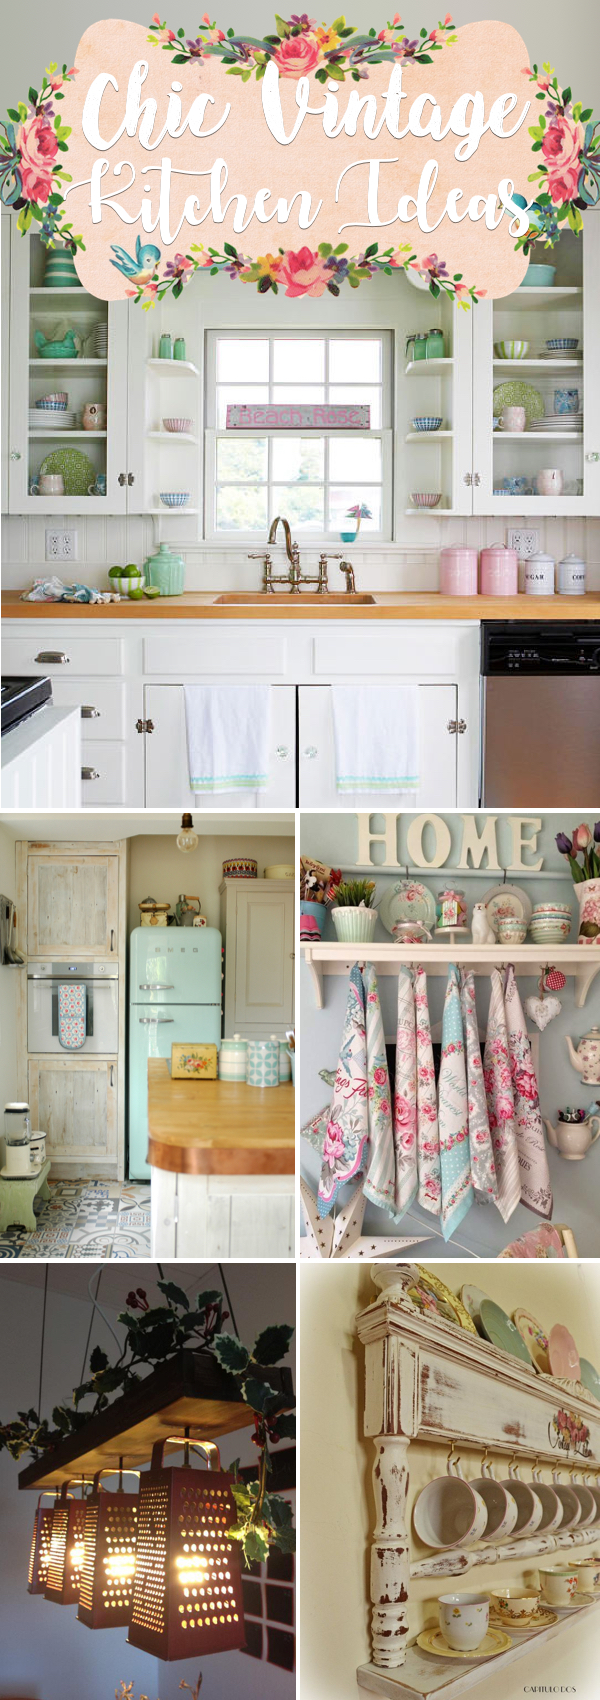 20 Ultra Chic Vintage Kitchen Ideas Inspired By The Last Mid Century Cute Diy Projects